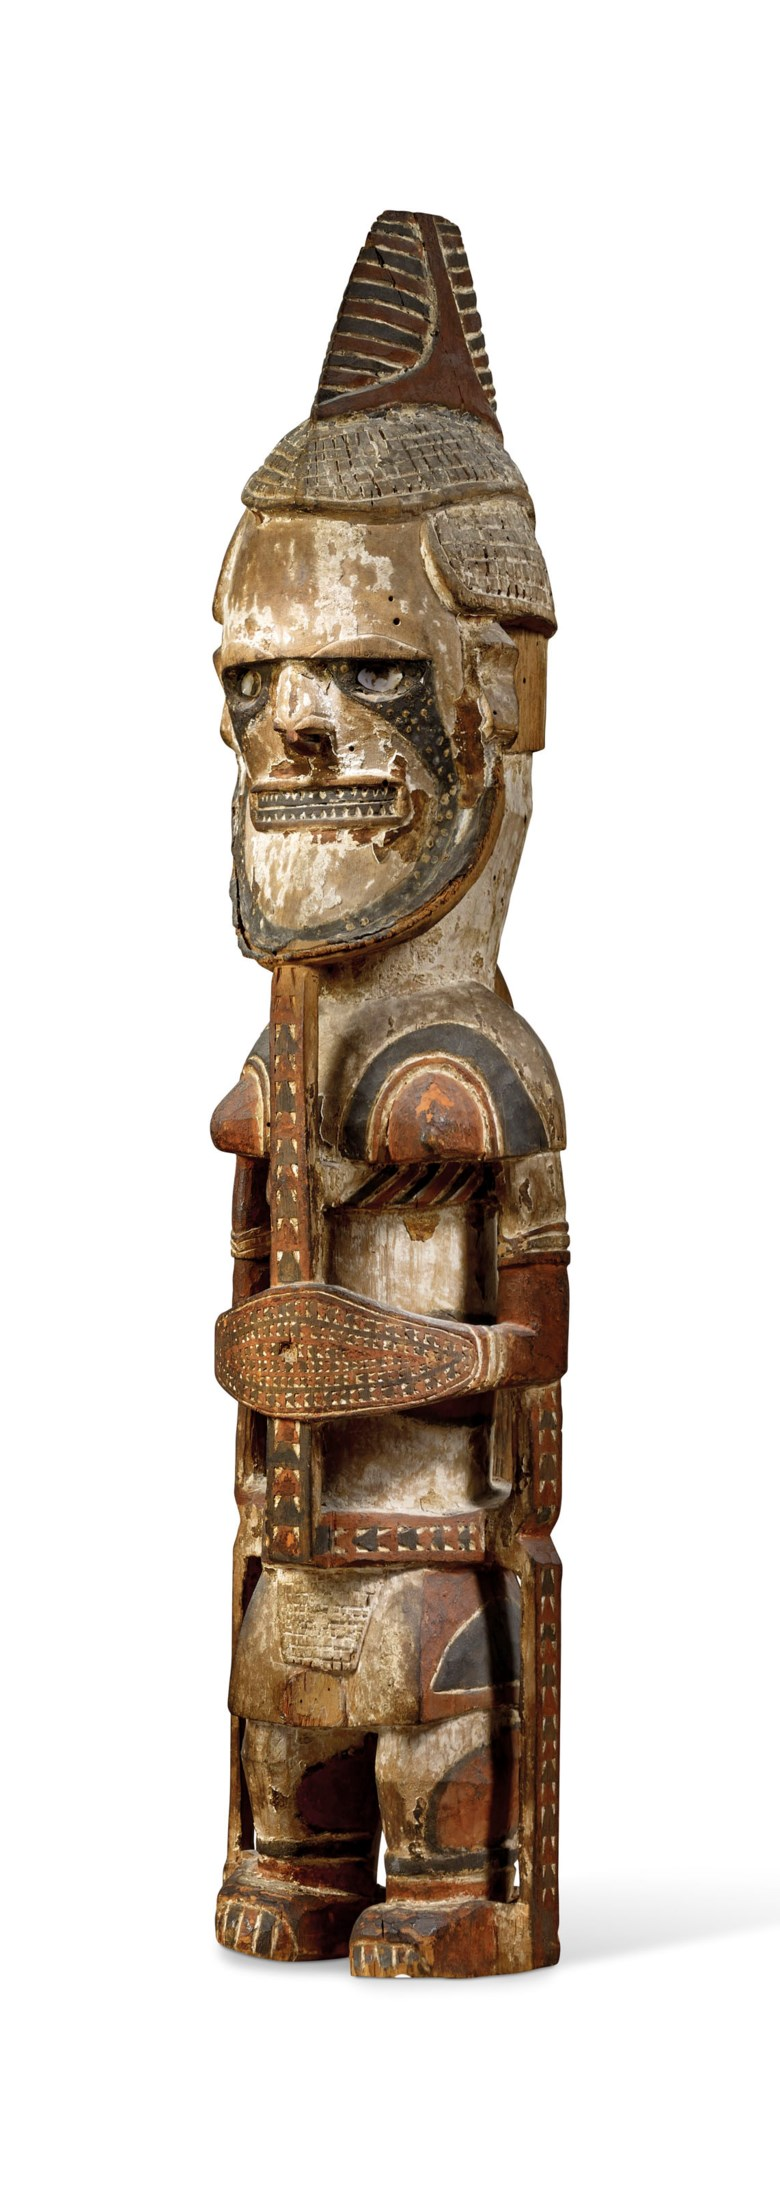 An Uli ancestor figure, New Ireland, Papua New Guinea. Height 117  cm (46  in). Estimate €120,000-180,000. Offered in Art from Africa, Oceania and North America on 10 April 2019 at Christie's in Paris